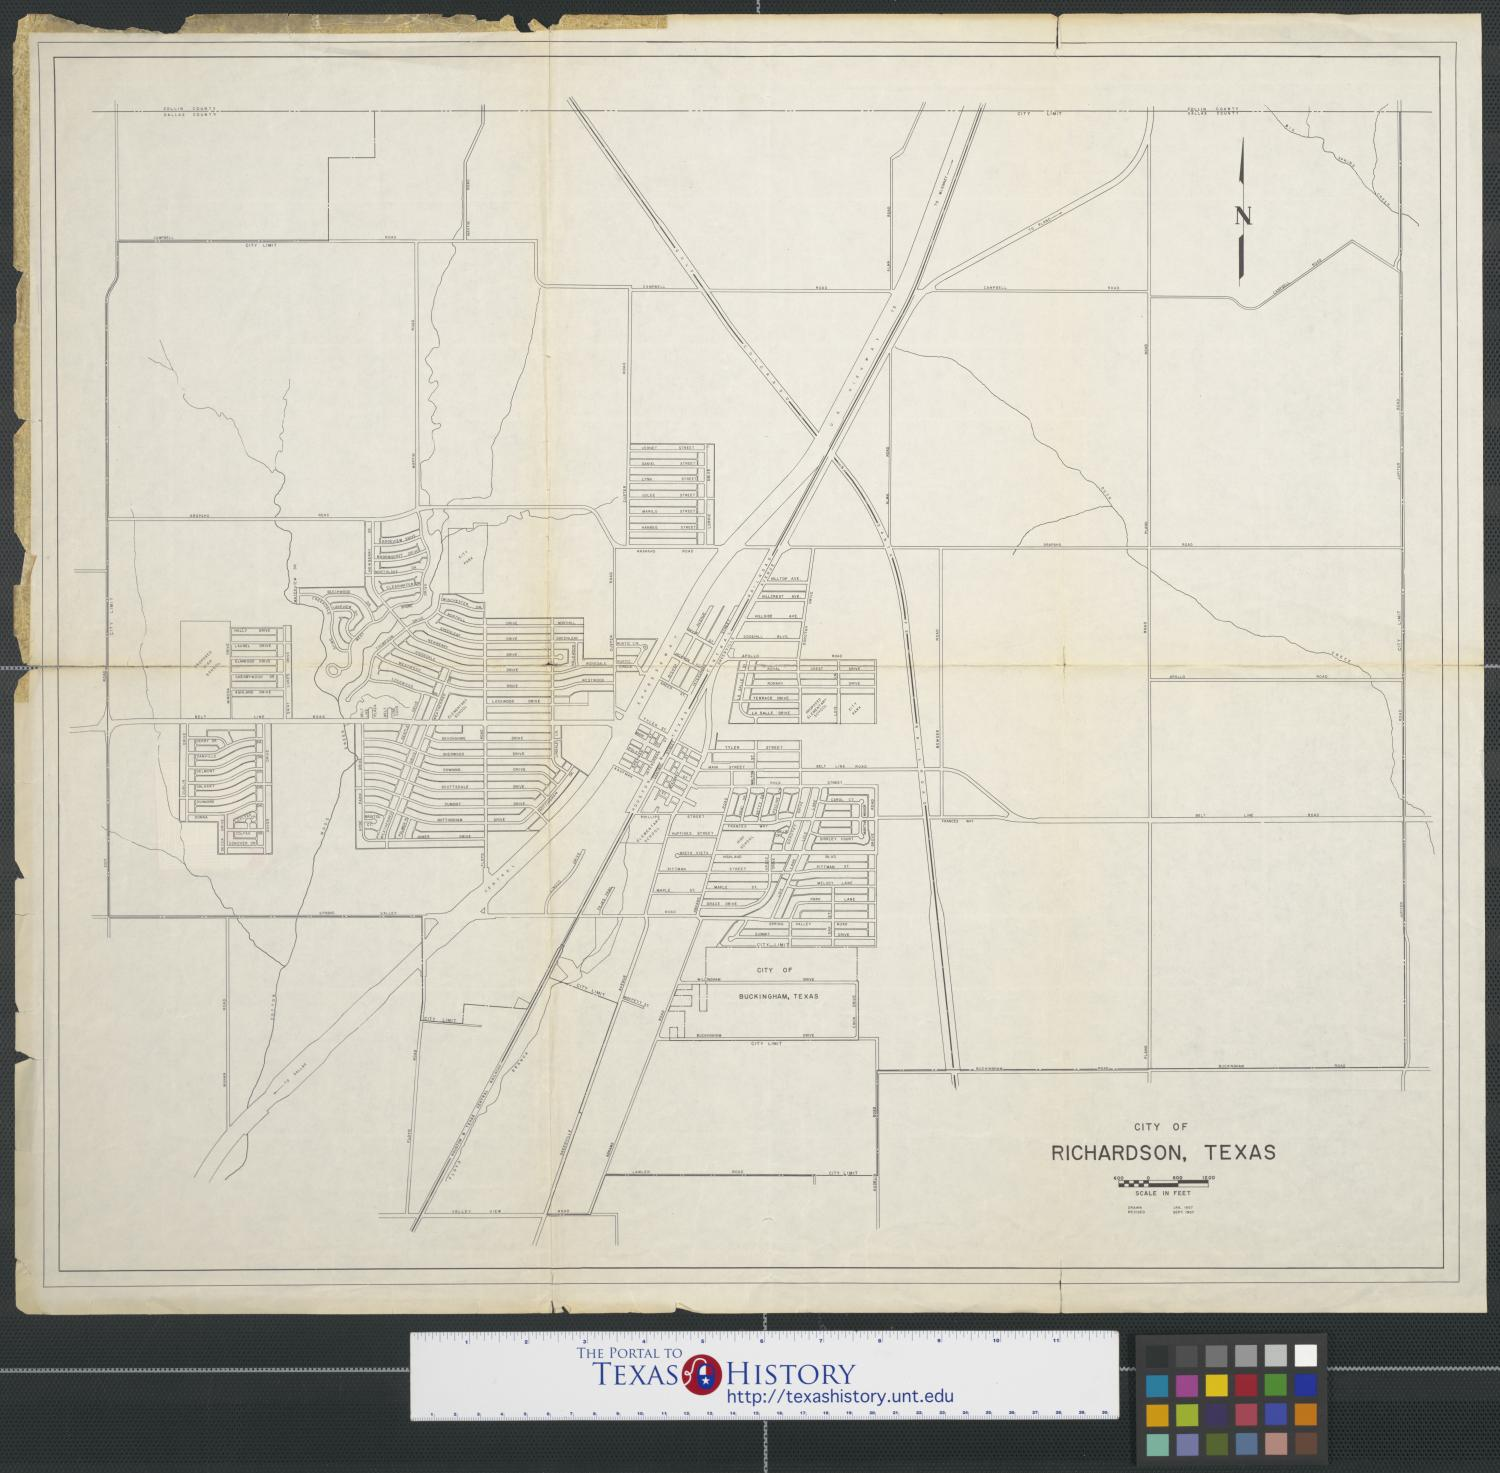 [Map of] City of Richardson, Texas, Map of Richardson, Texas. The town boundaries are marked as well as the streets, land divisions, and creeks. Scale 1:1,200.,